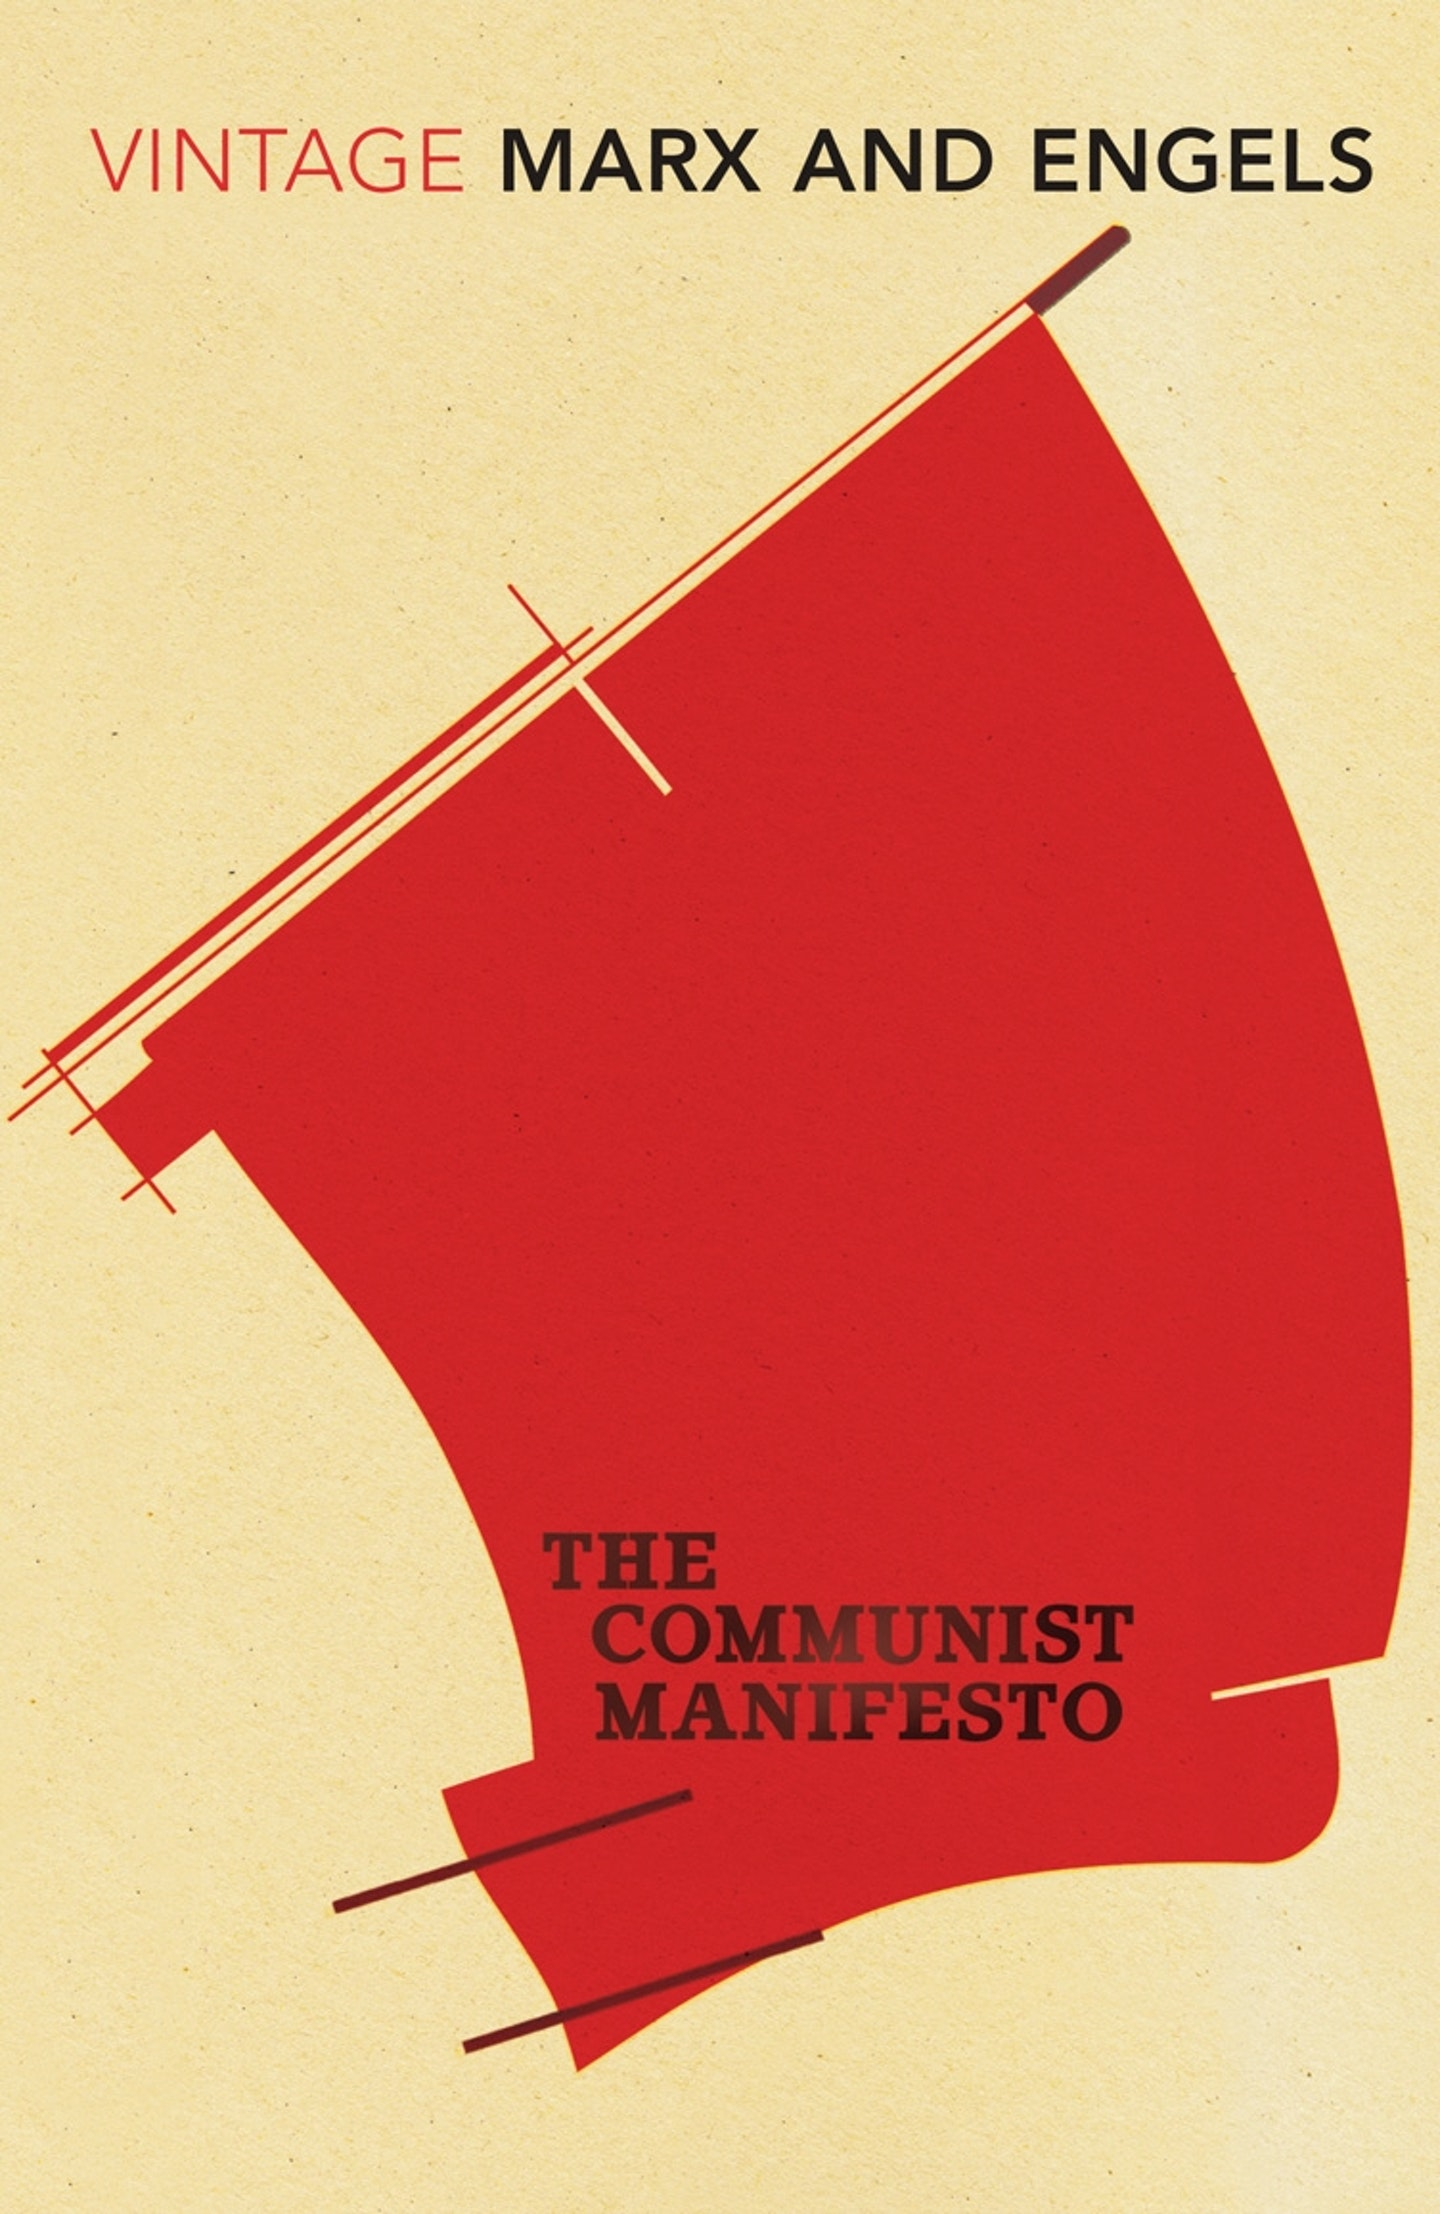 thesis of the communist manifesto Read this essay on communist manifesto come browse our large digital warehouse of free sample essays get the knowledge you need in order to pass your classes and more only at termpaperwarehousecom.